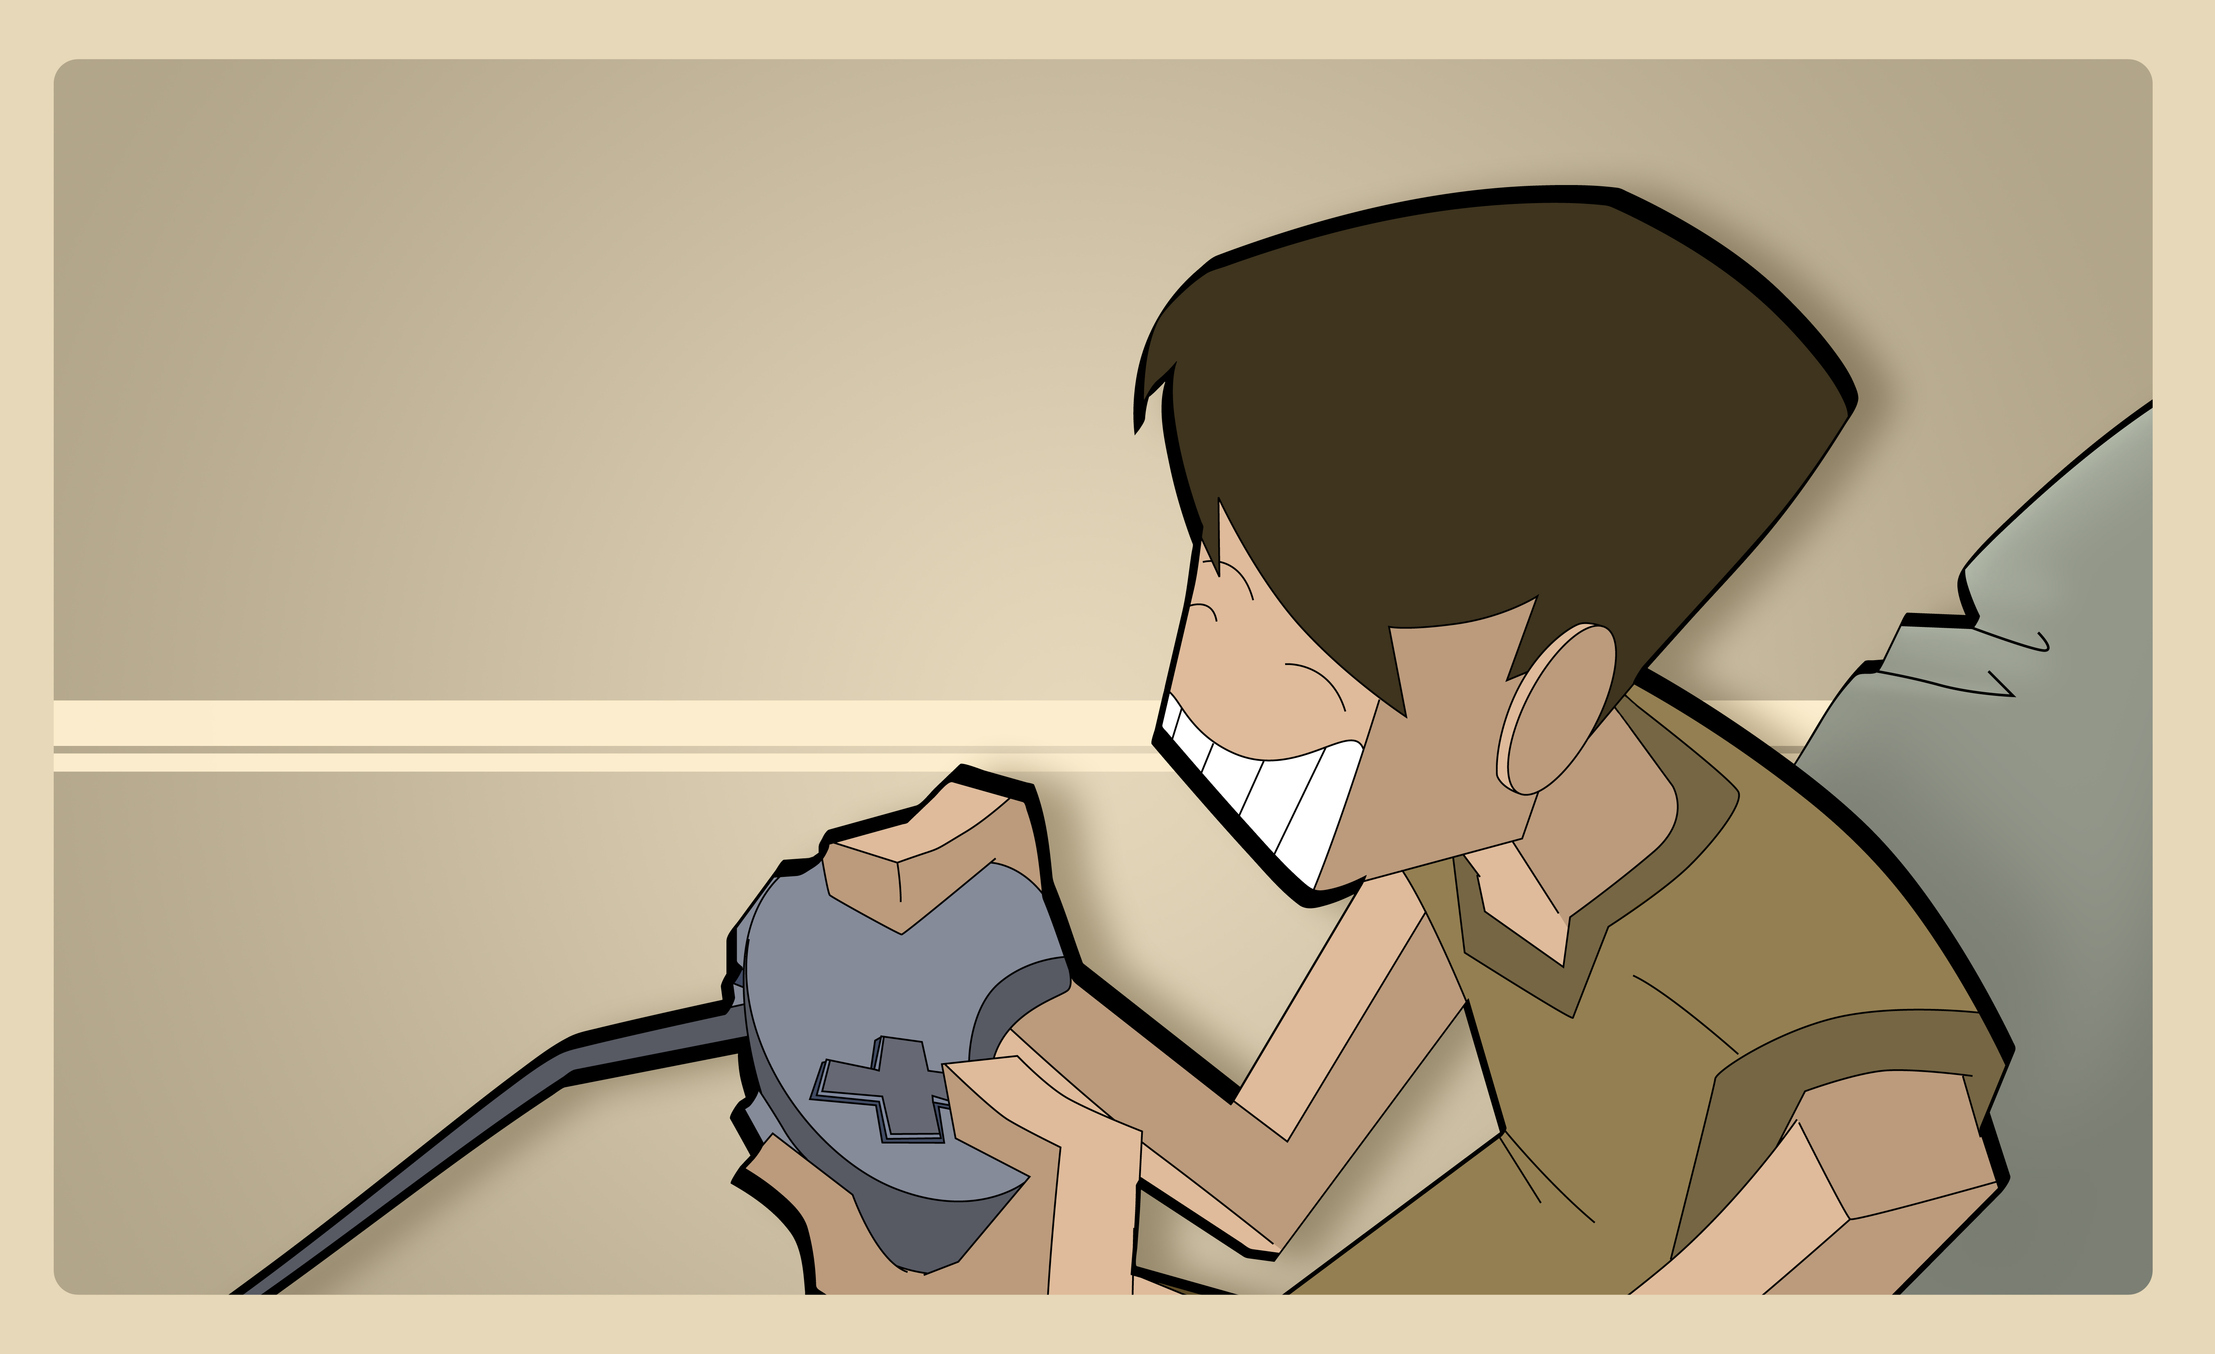 Illustration of ADHD boy playing video game